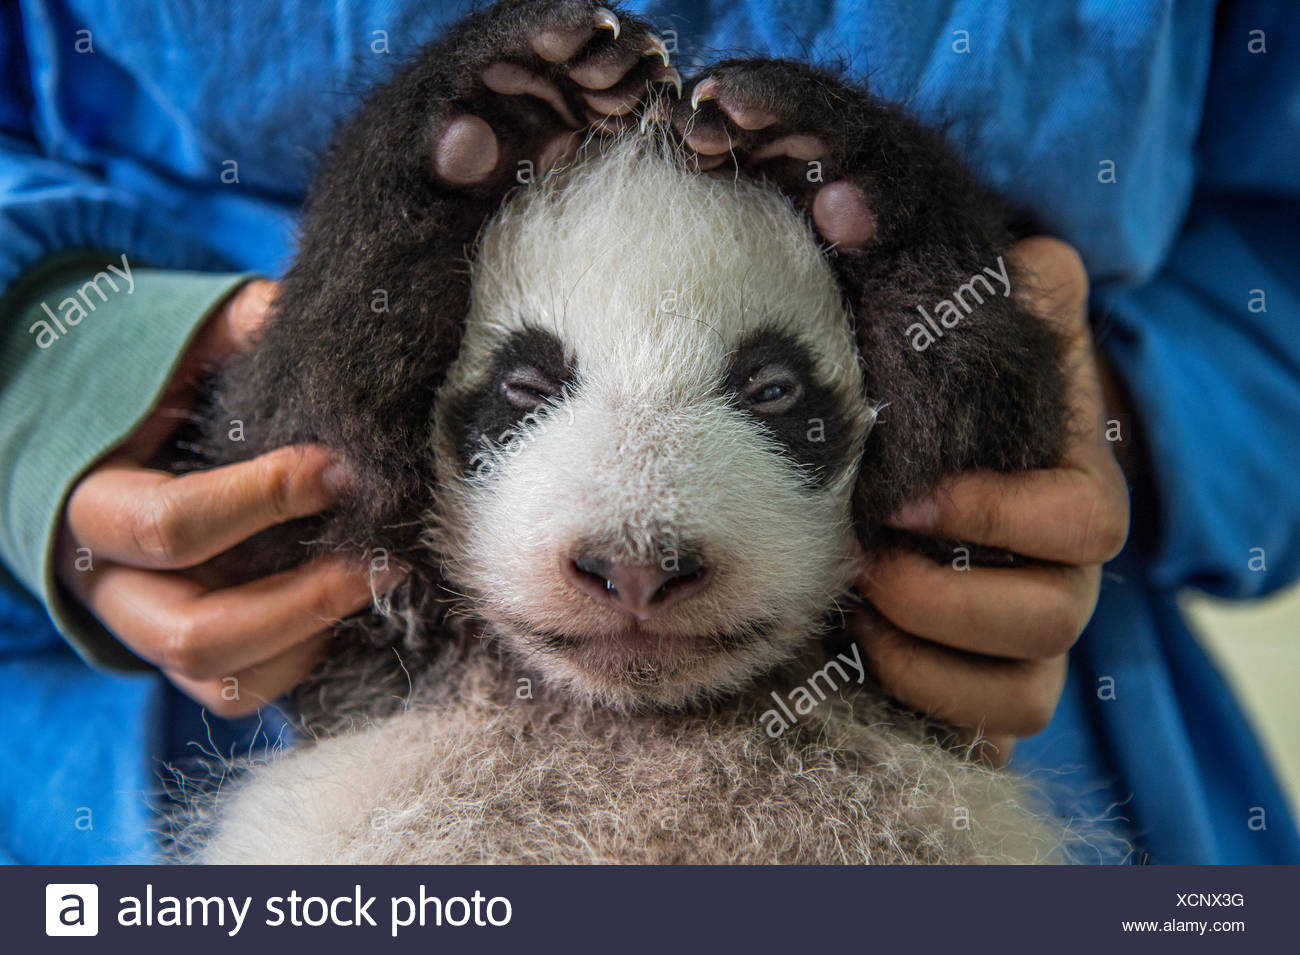 A two month old giant panda cub is cared for at the Bifengxia Giant Panda Breeding and Research Center in Sichuan Province, China. - Stock Image